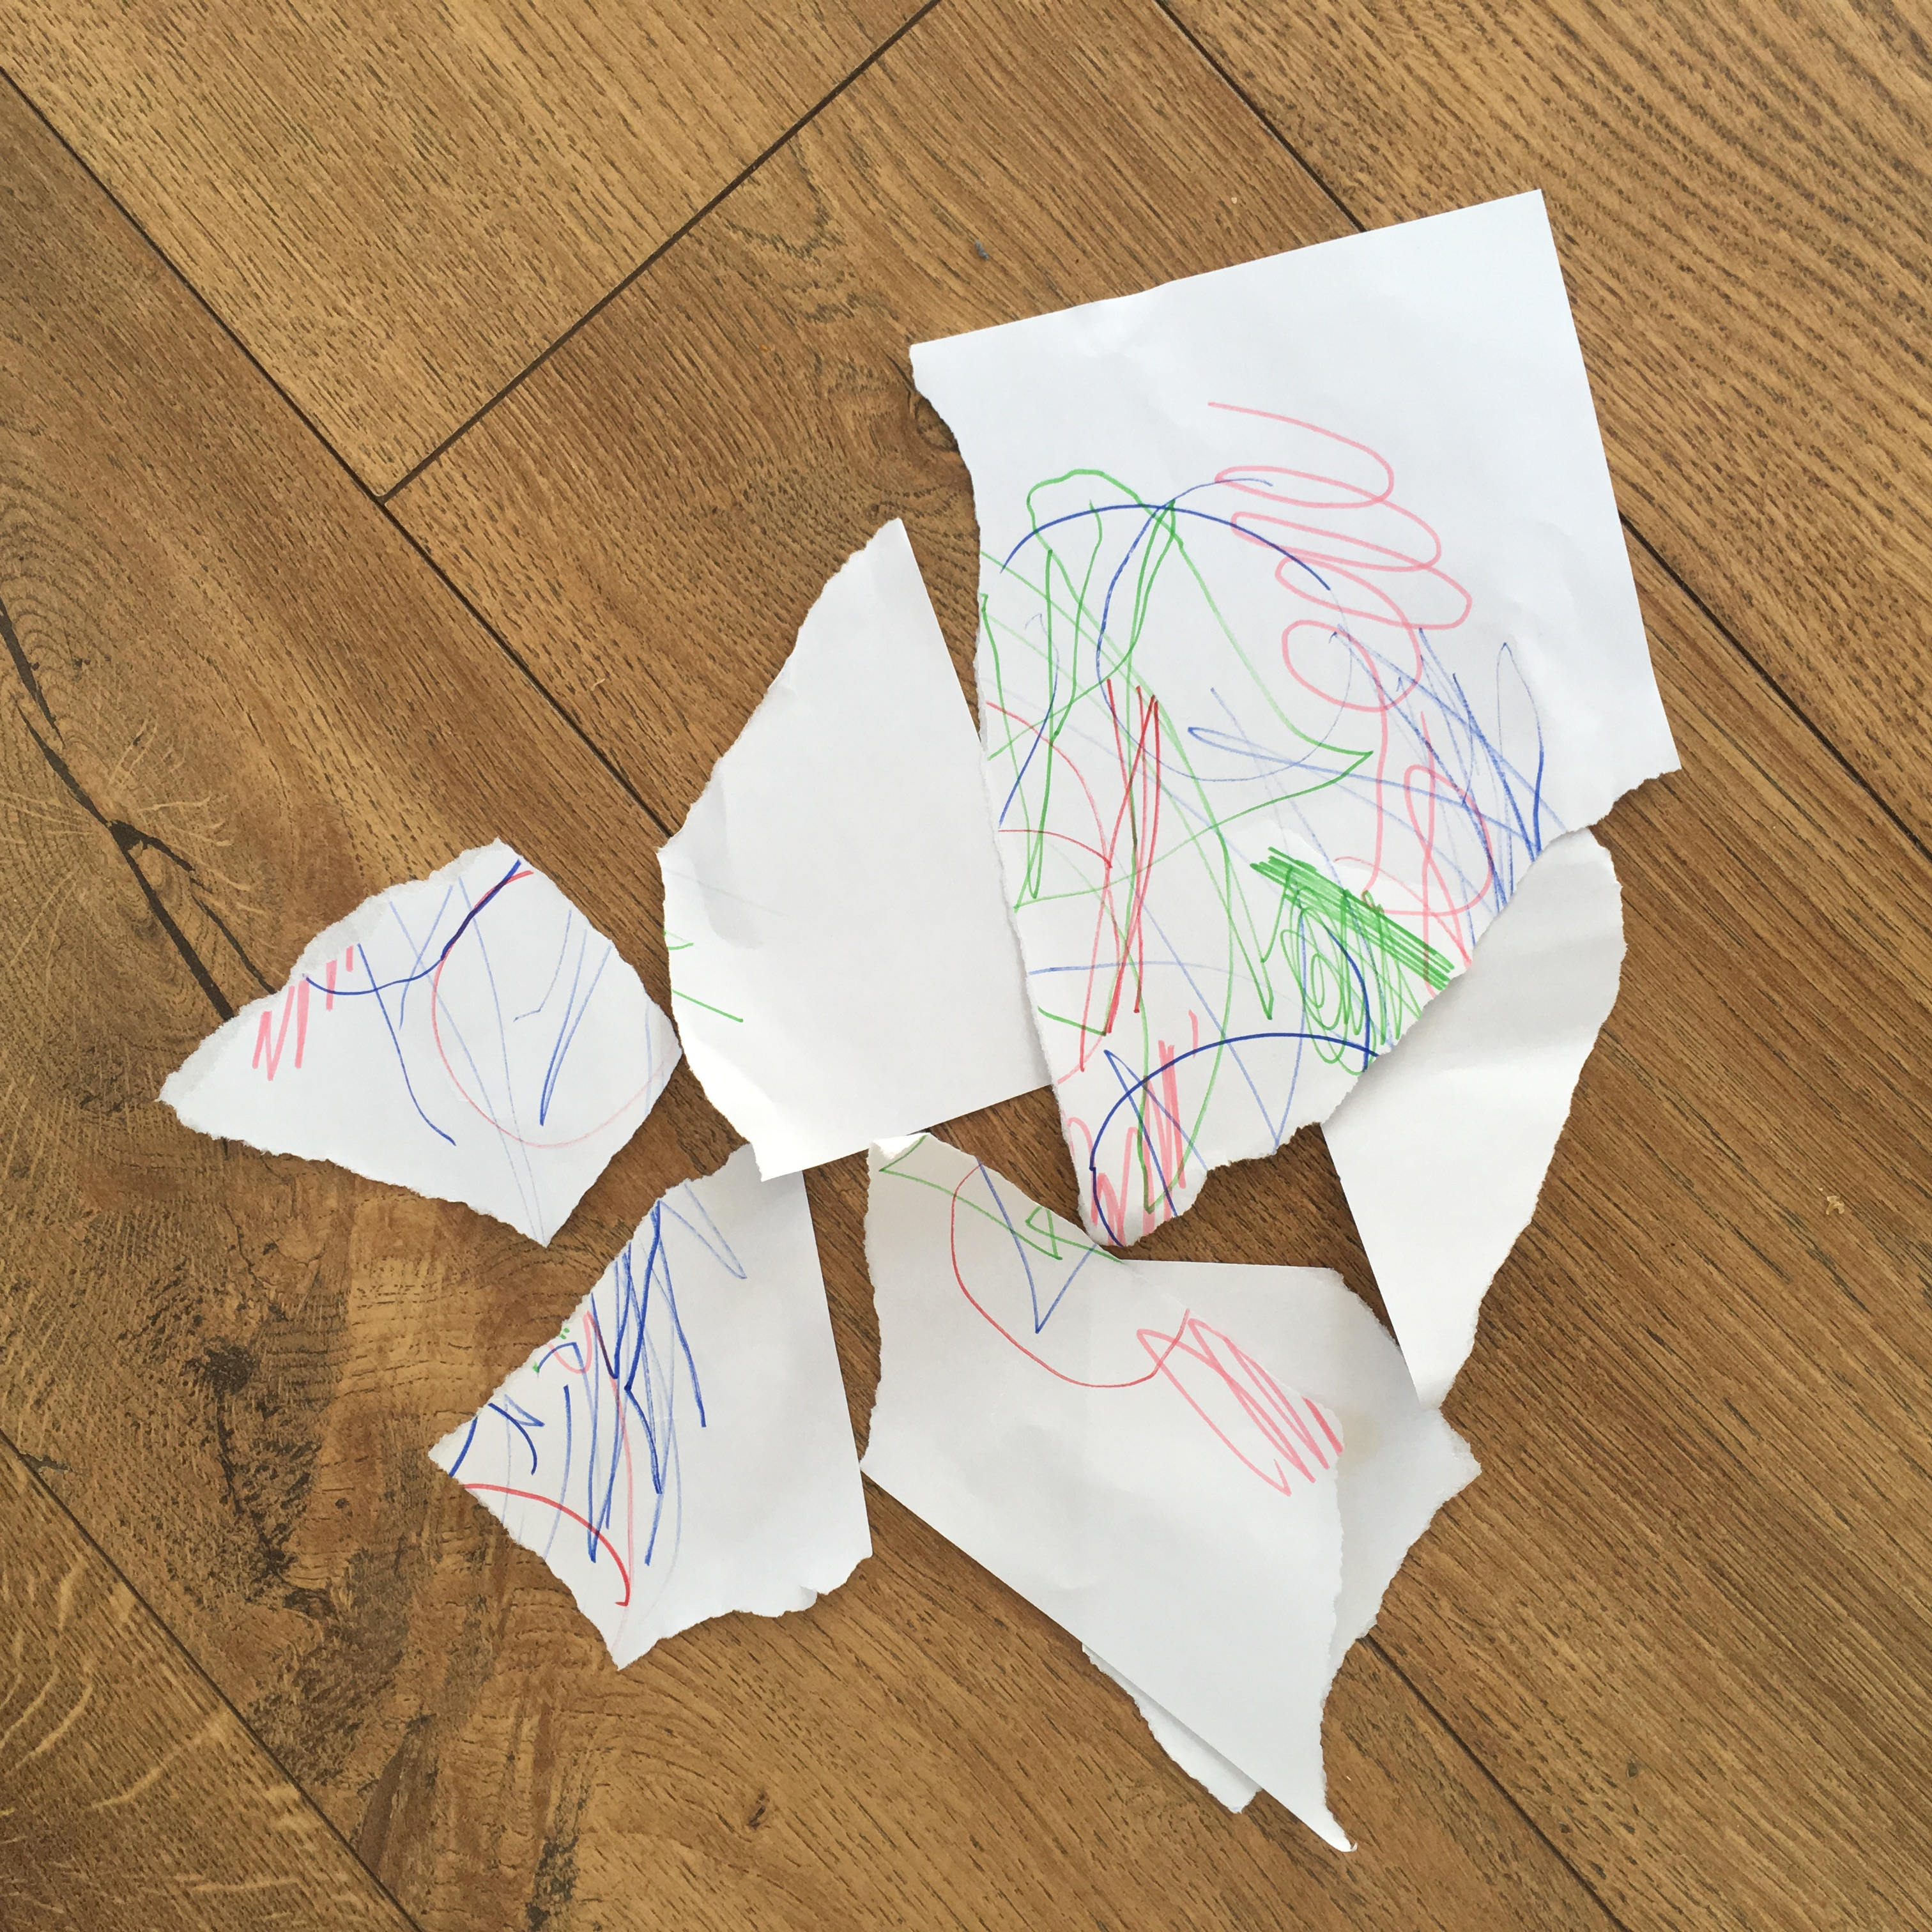 A photo of an A4 piece of paper with a child's drawing that has been ripped into pieces.